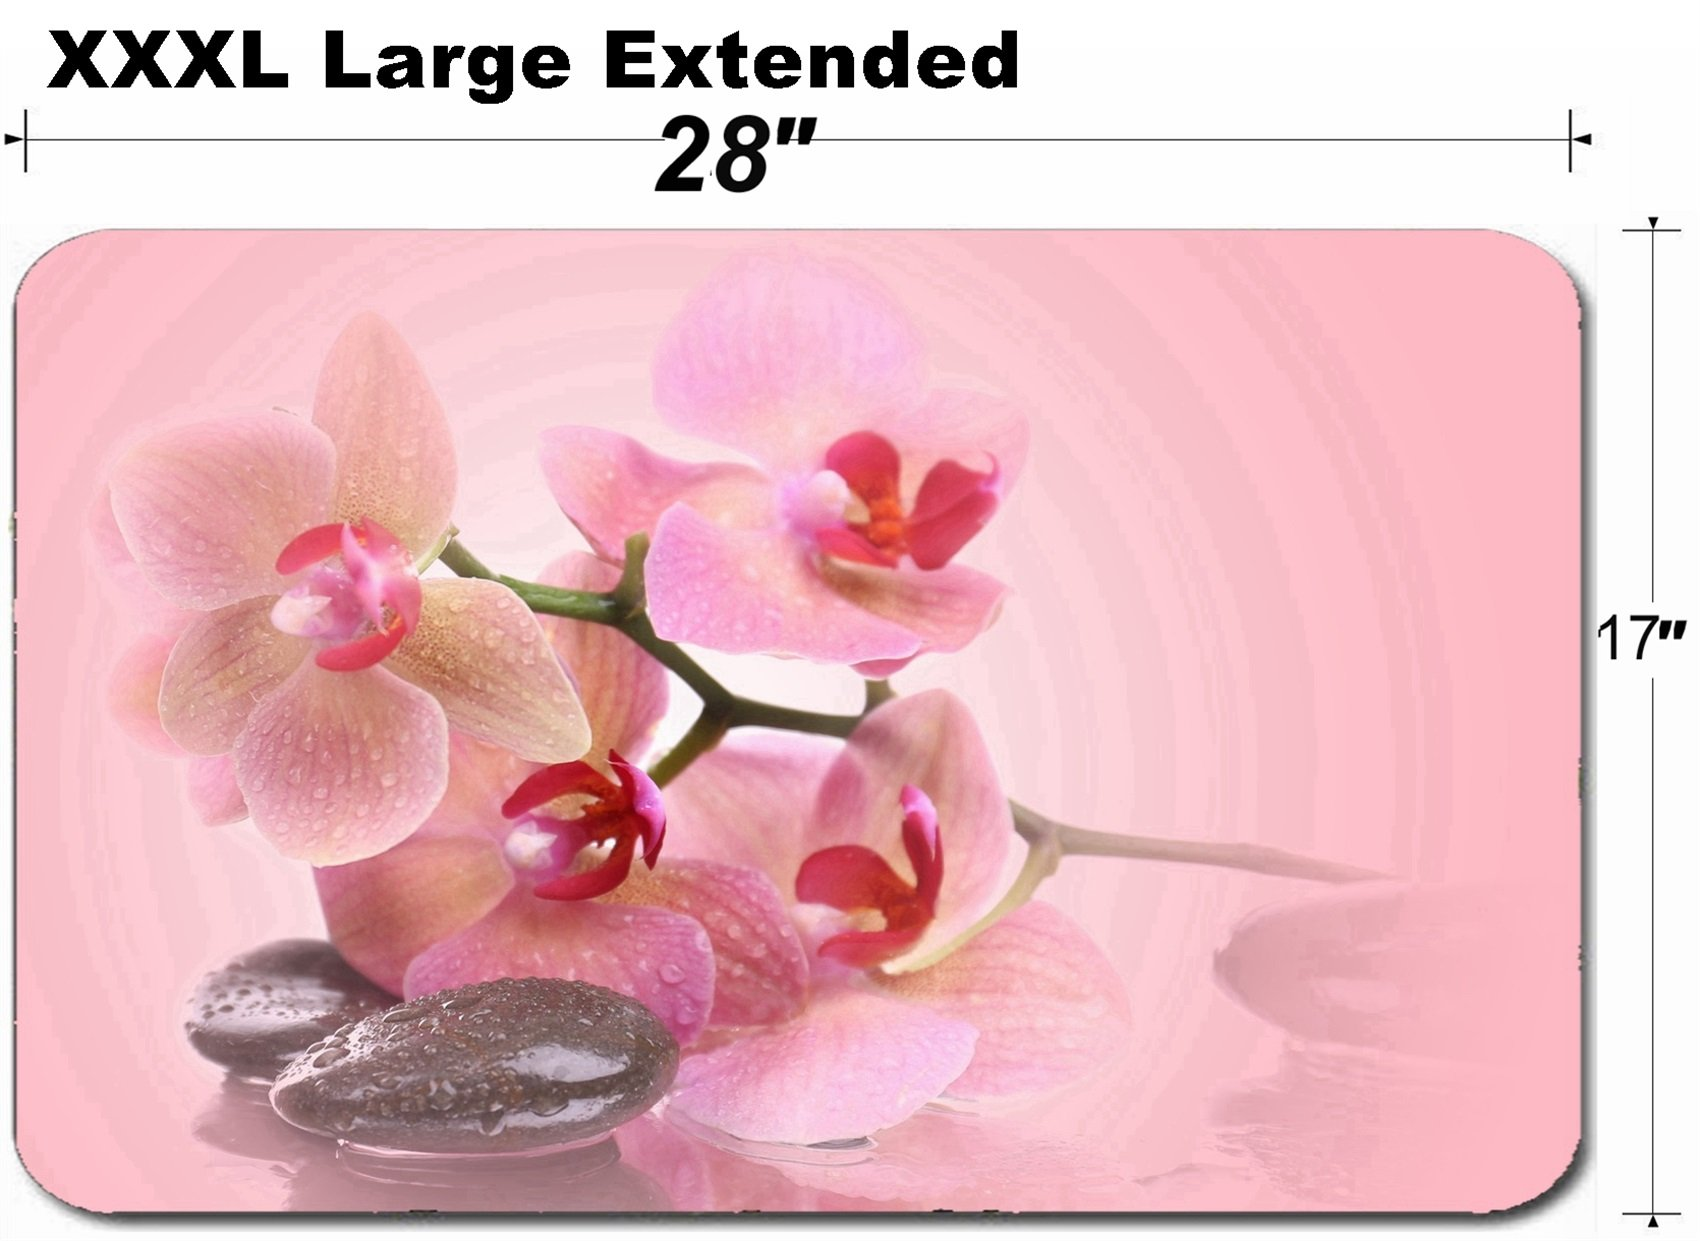 MSD Large Table Mat Non-Slip Natural Rubber Desk Pads Image ID 36276854 Beautiful Blooming Orchid with Spa Stones on Pink Background